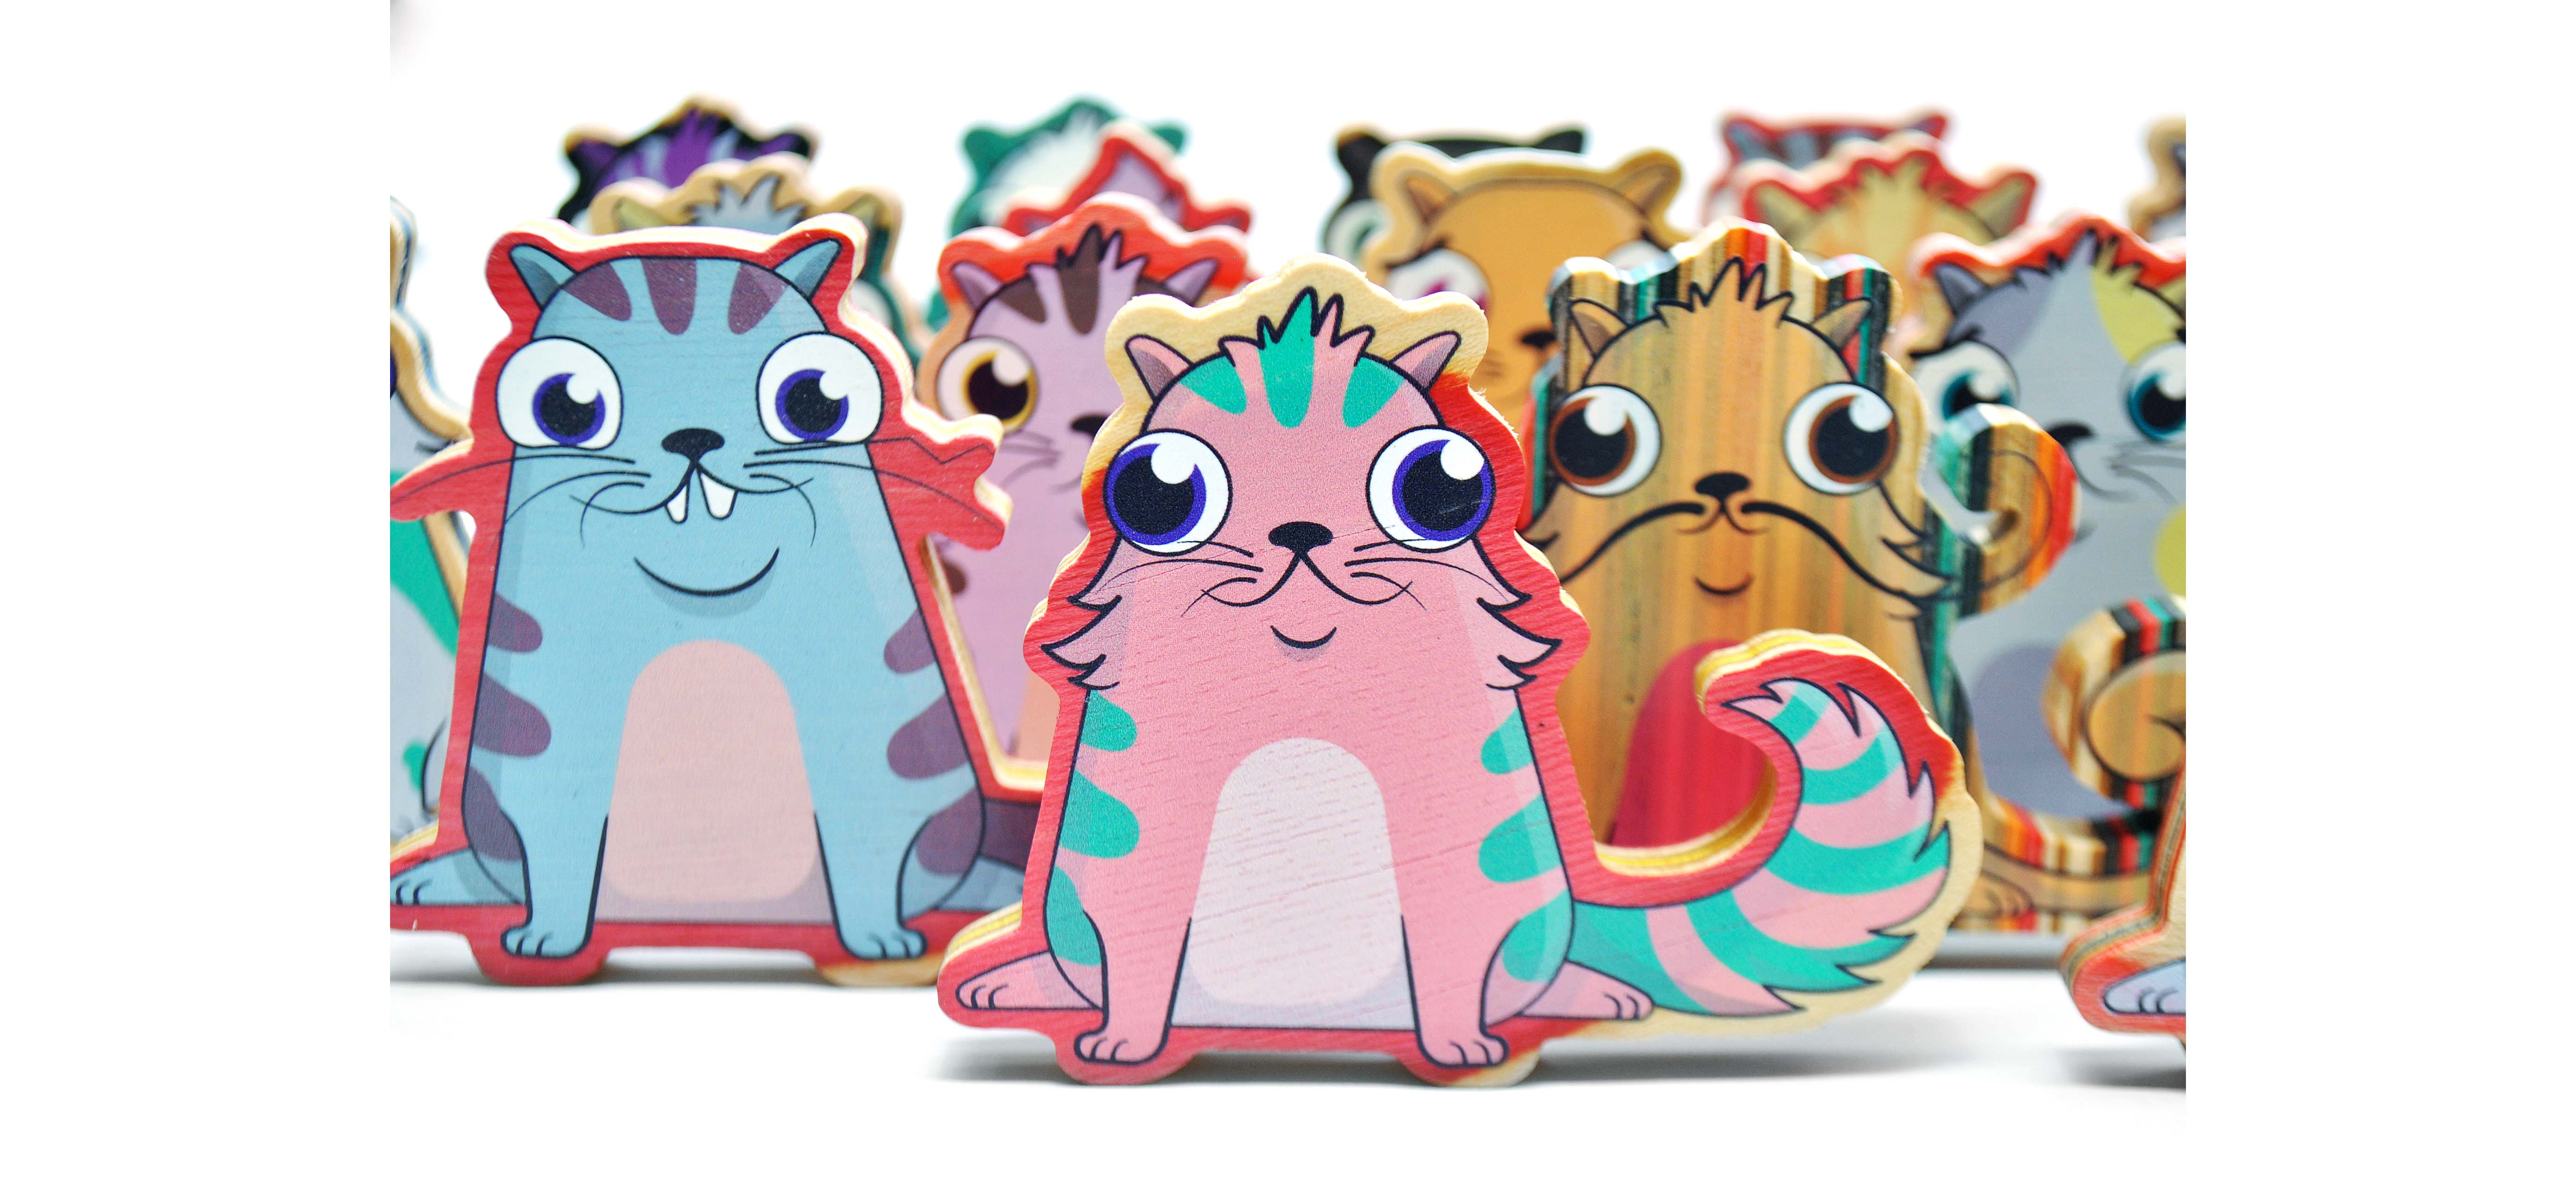 cryptokitties figurines